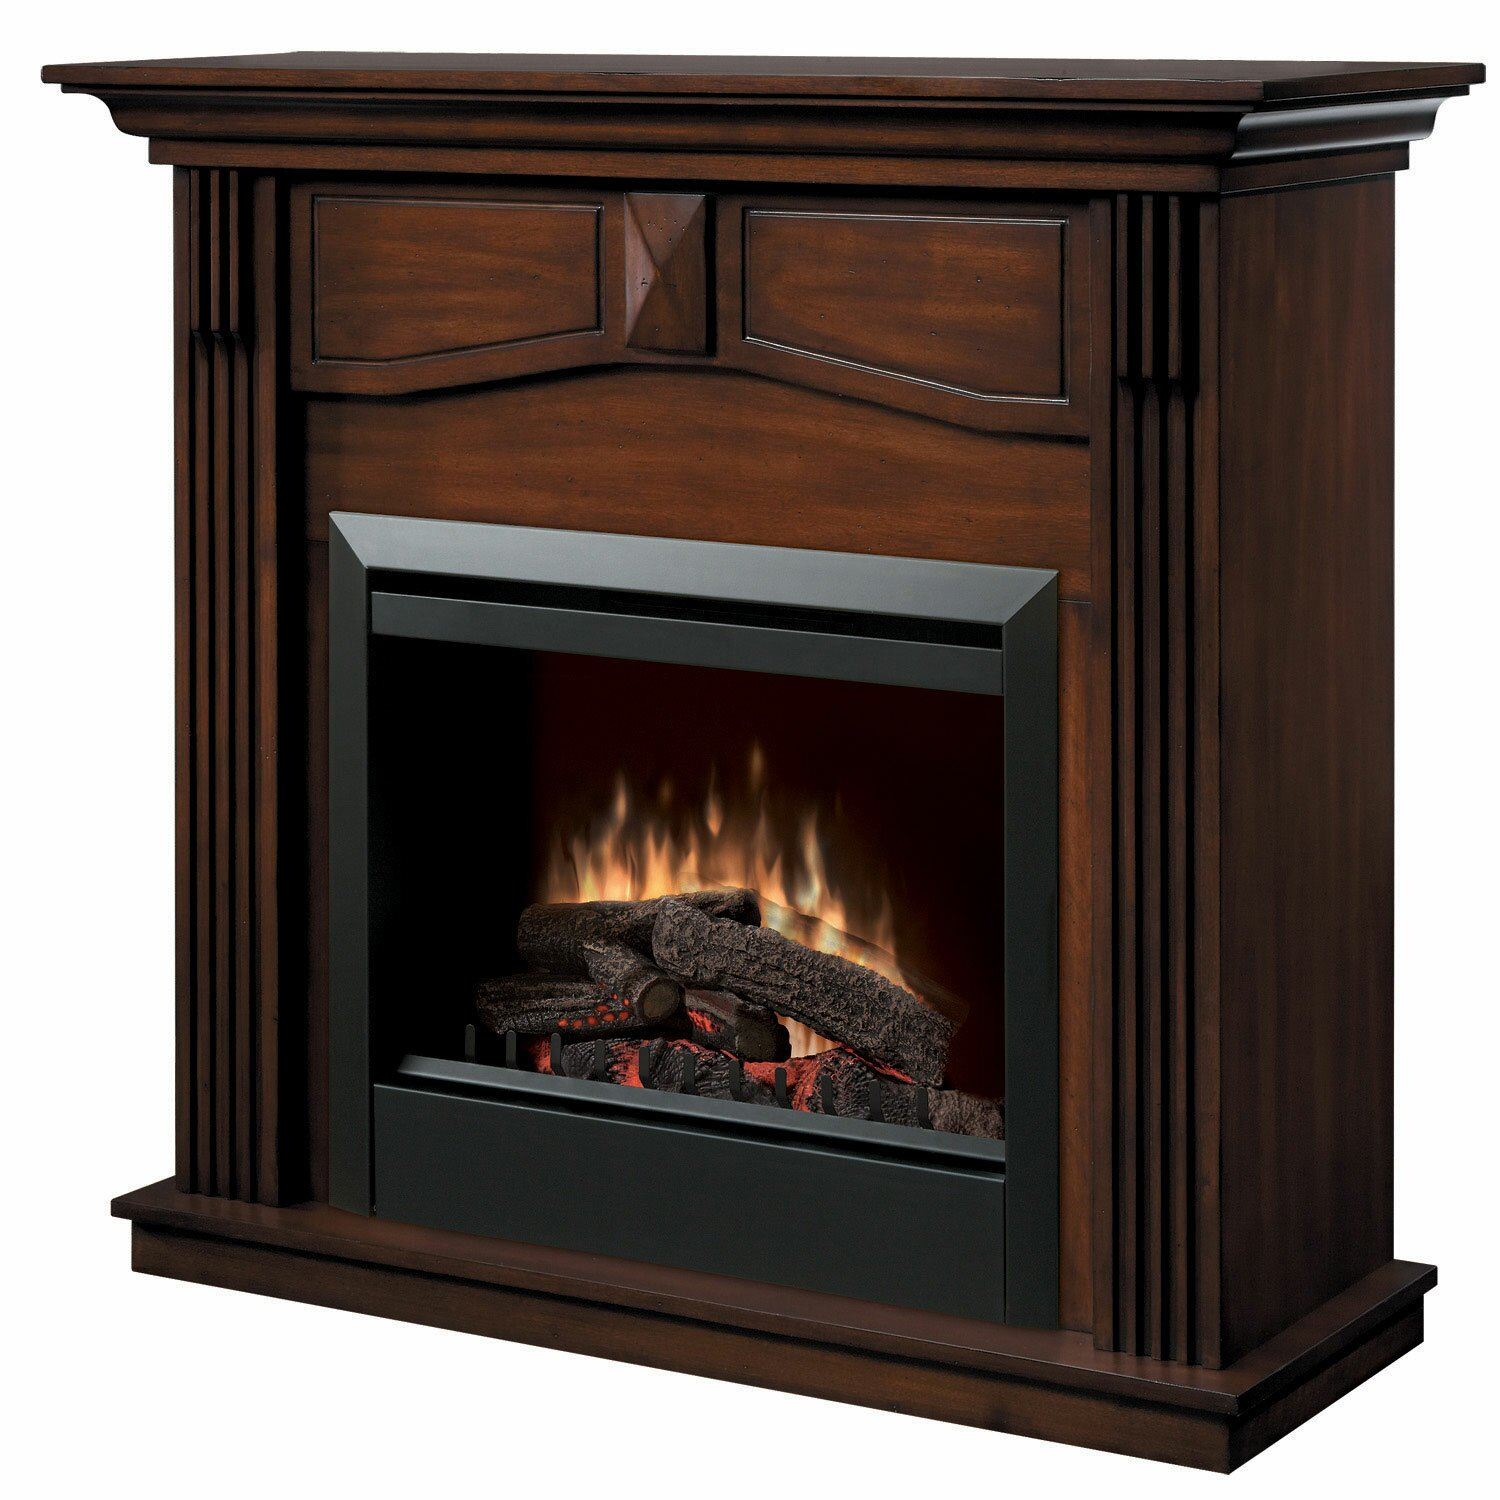 Dimplex Electraflame Holbrook Electric Fireplace - Dimplex Electraflame Holbrook Electric Fireplace & Reviews Wayfair